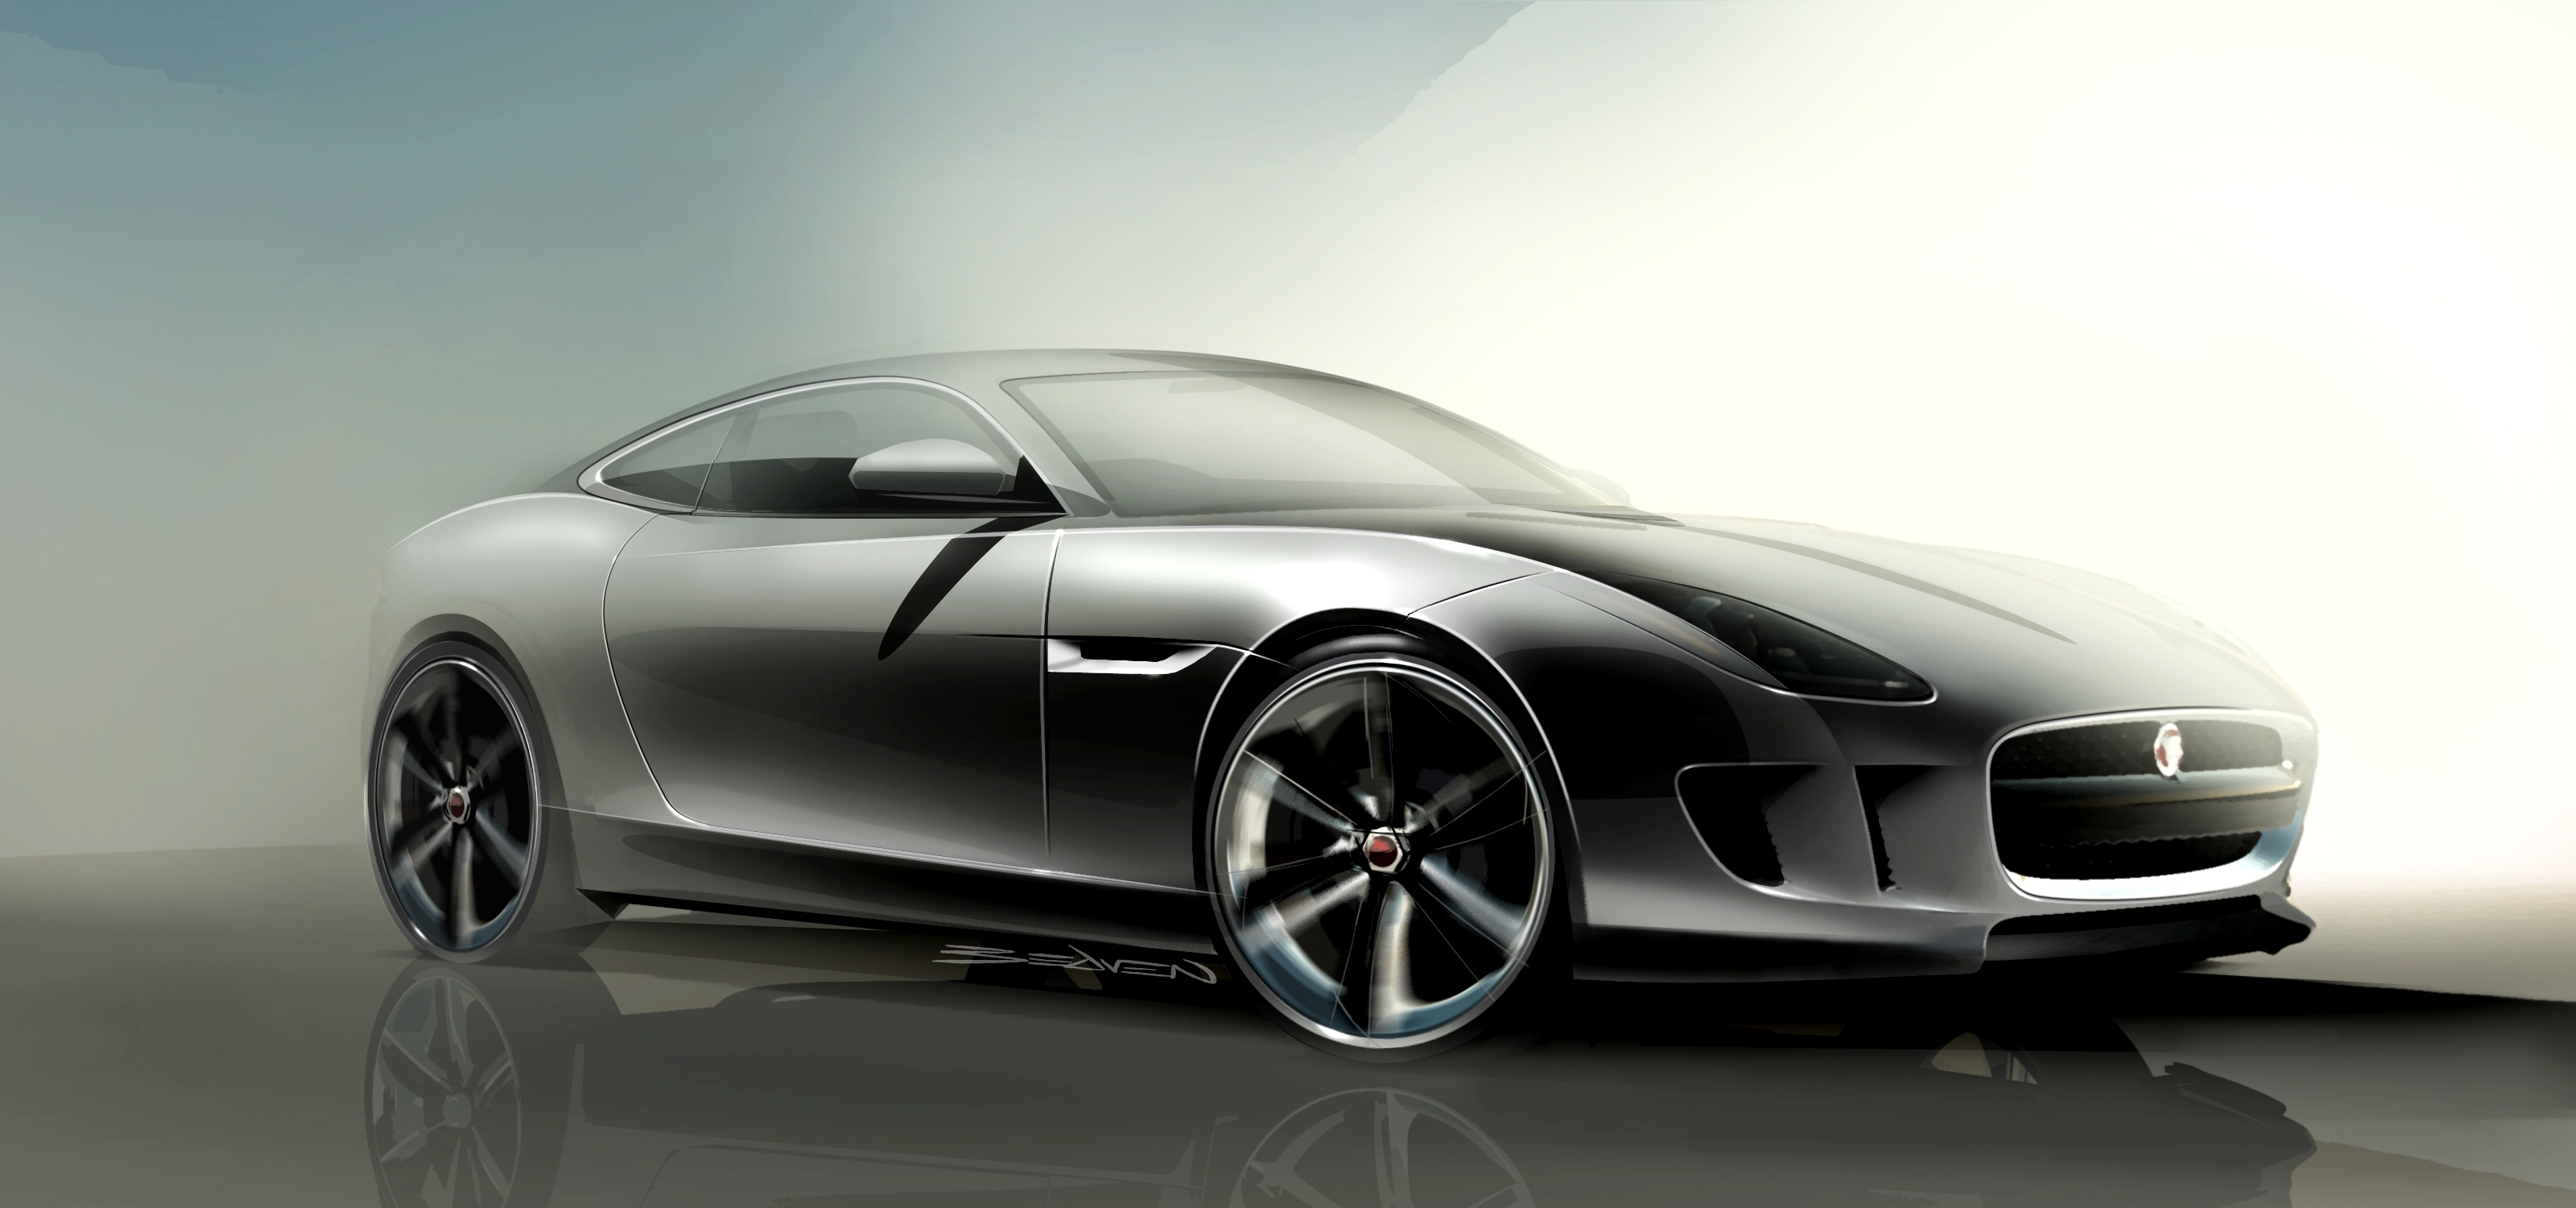 jaguar c x16 background